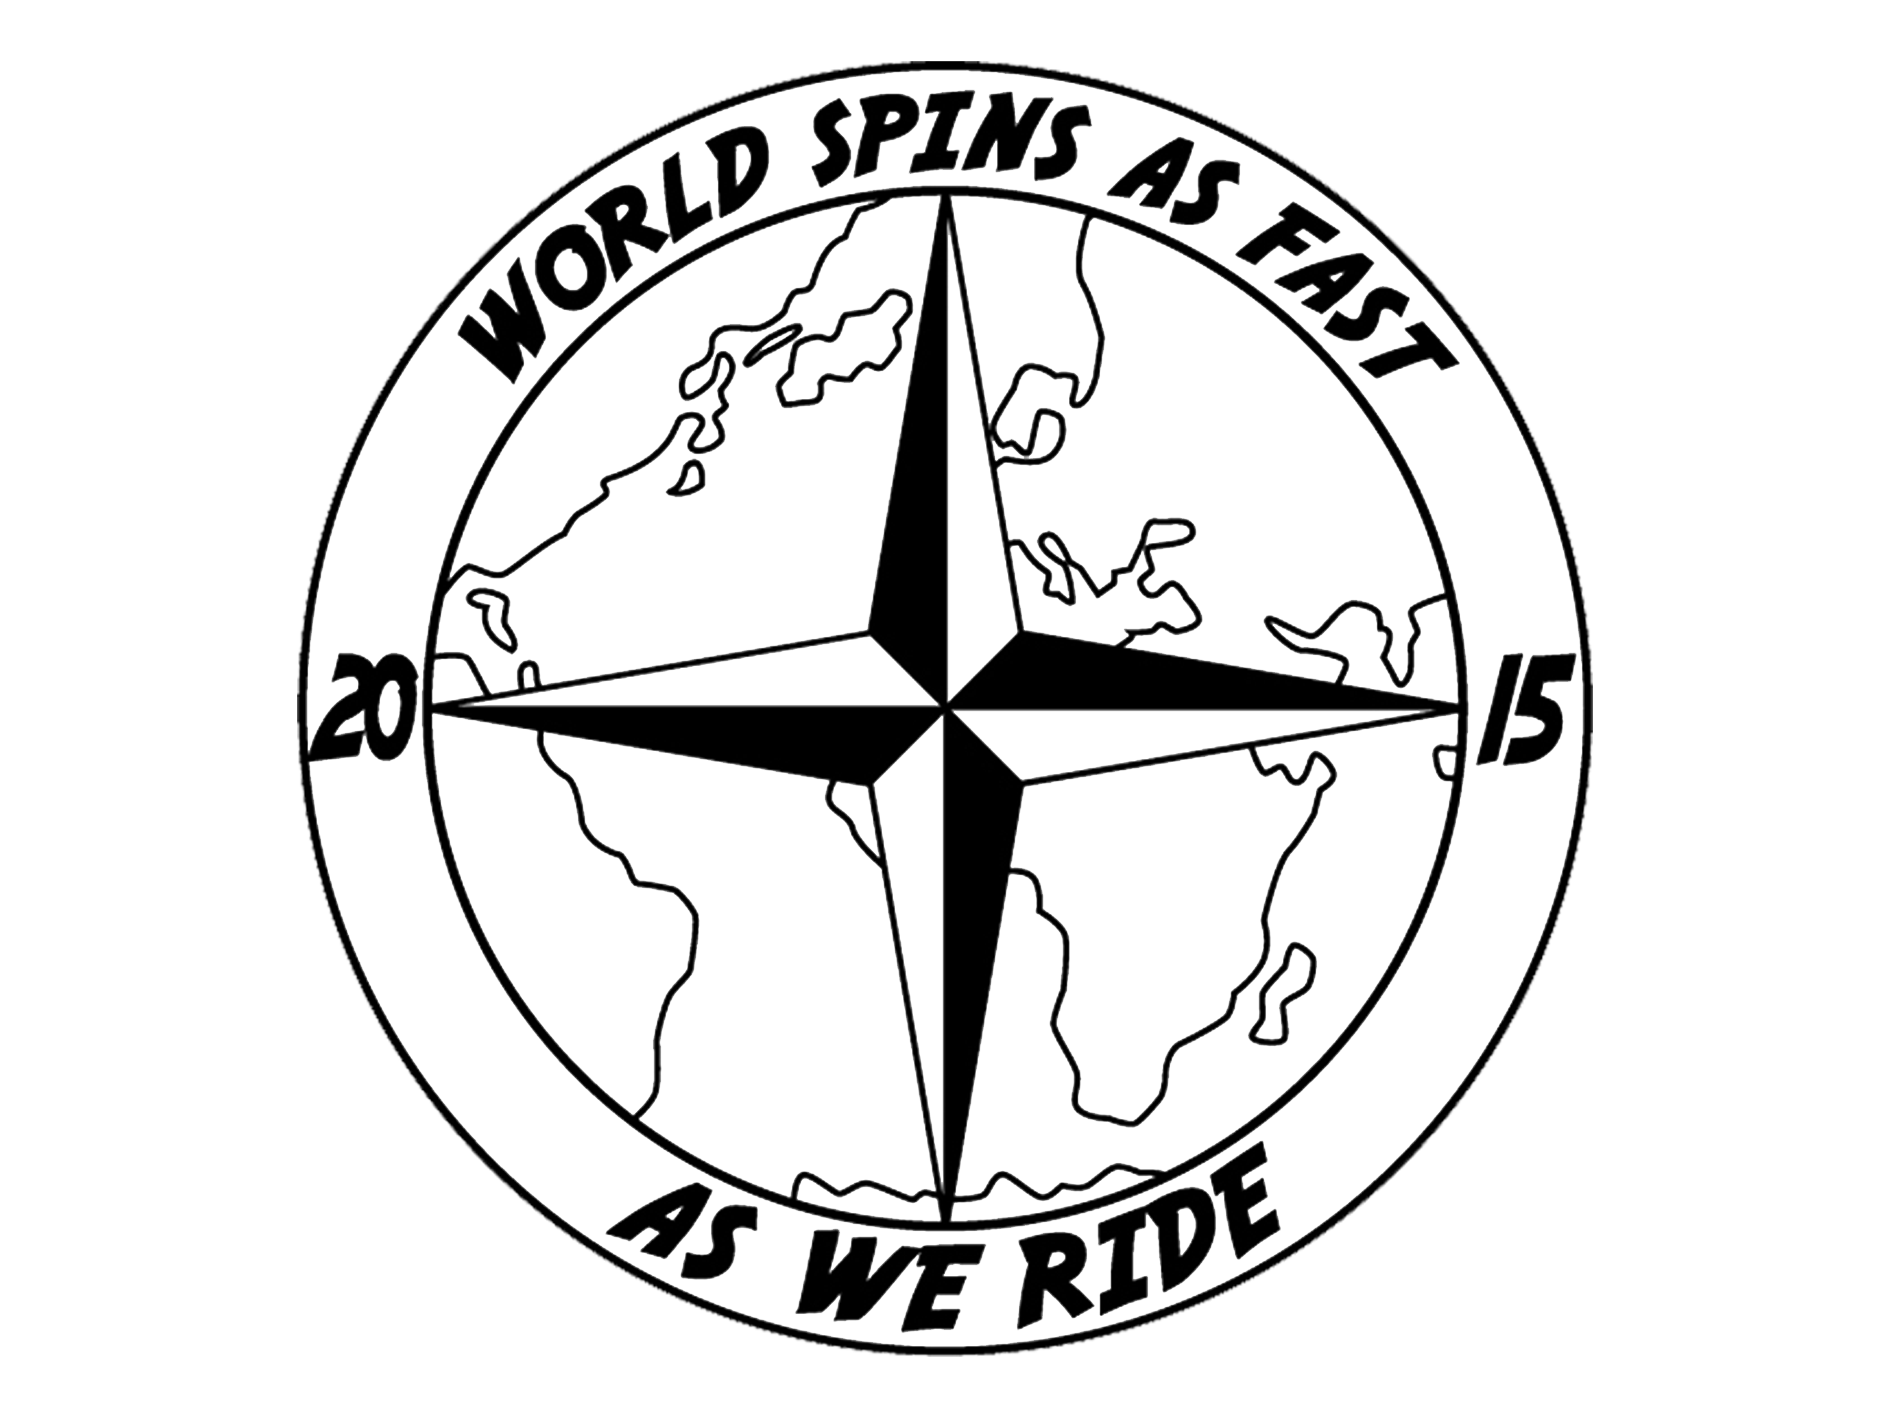 World spins as fast as we ride